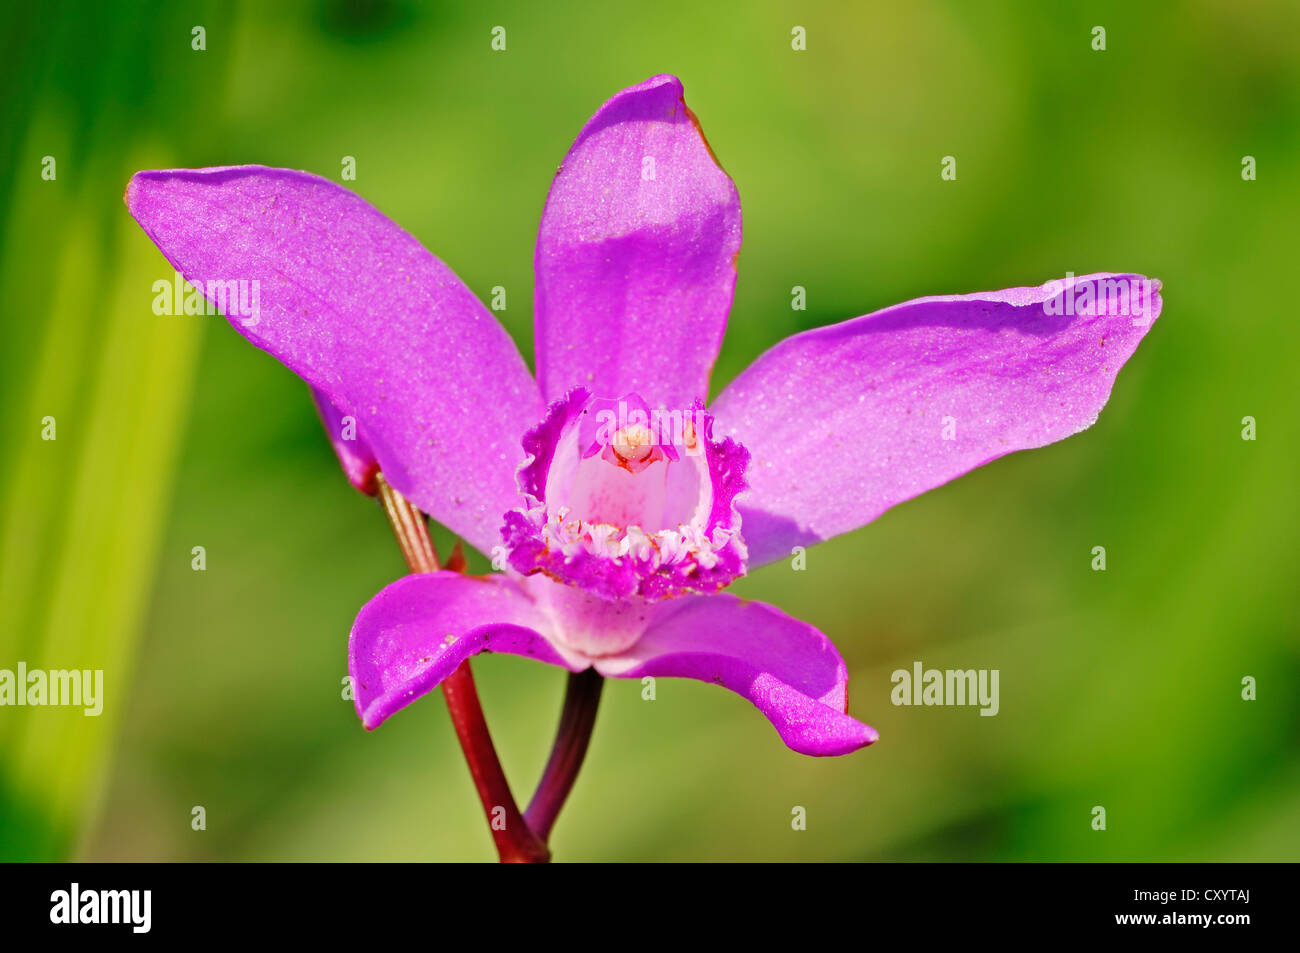 Chinese Orchid Bloom Stock Photos & Chinese Orchid Bloom ...